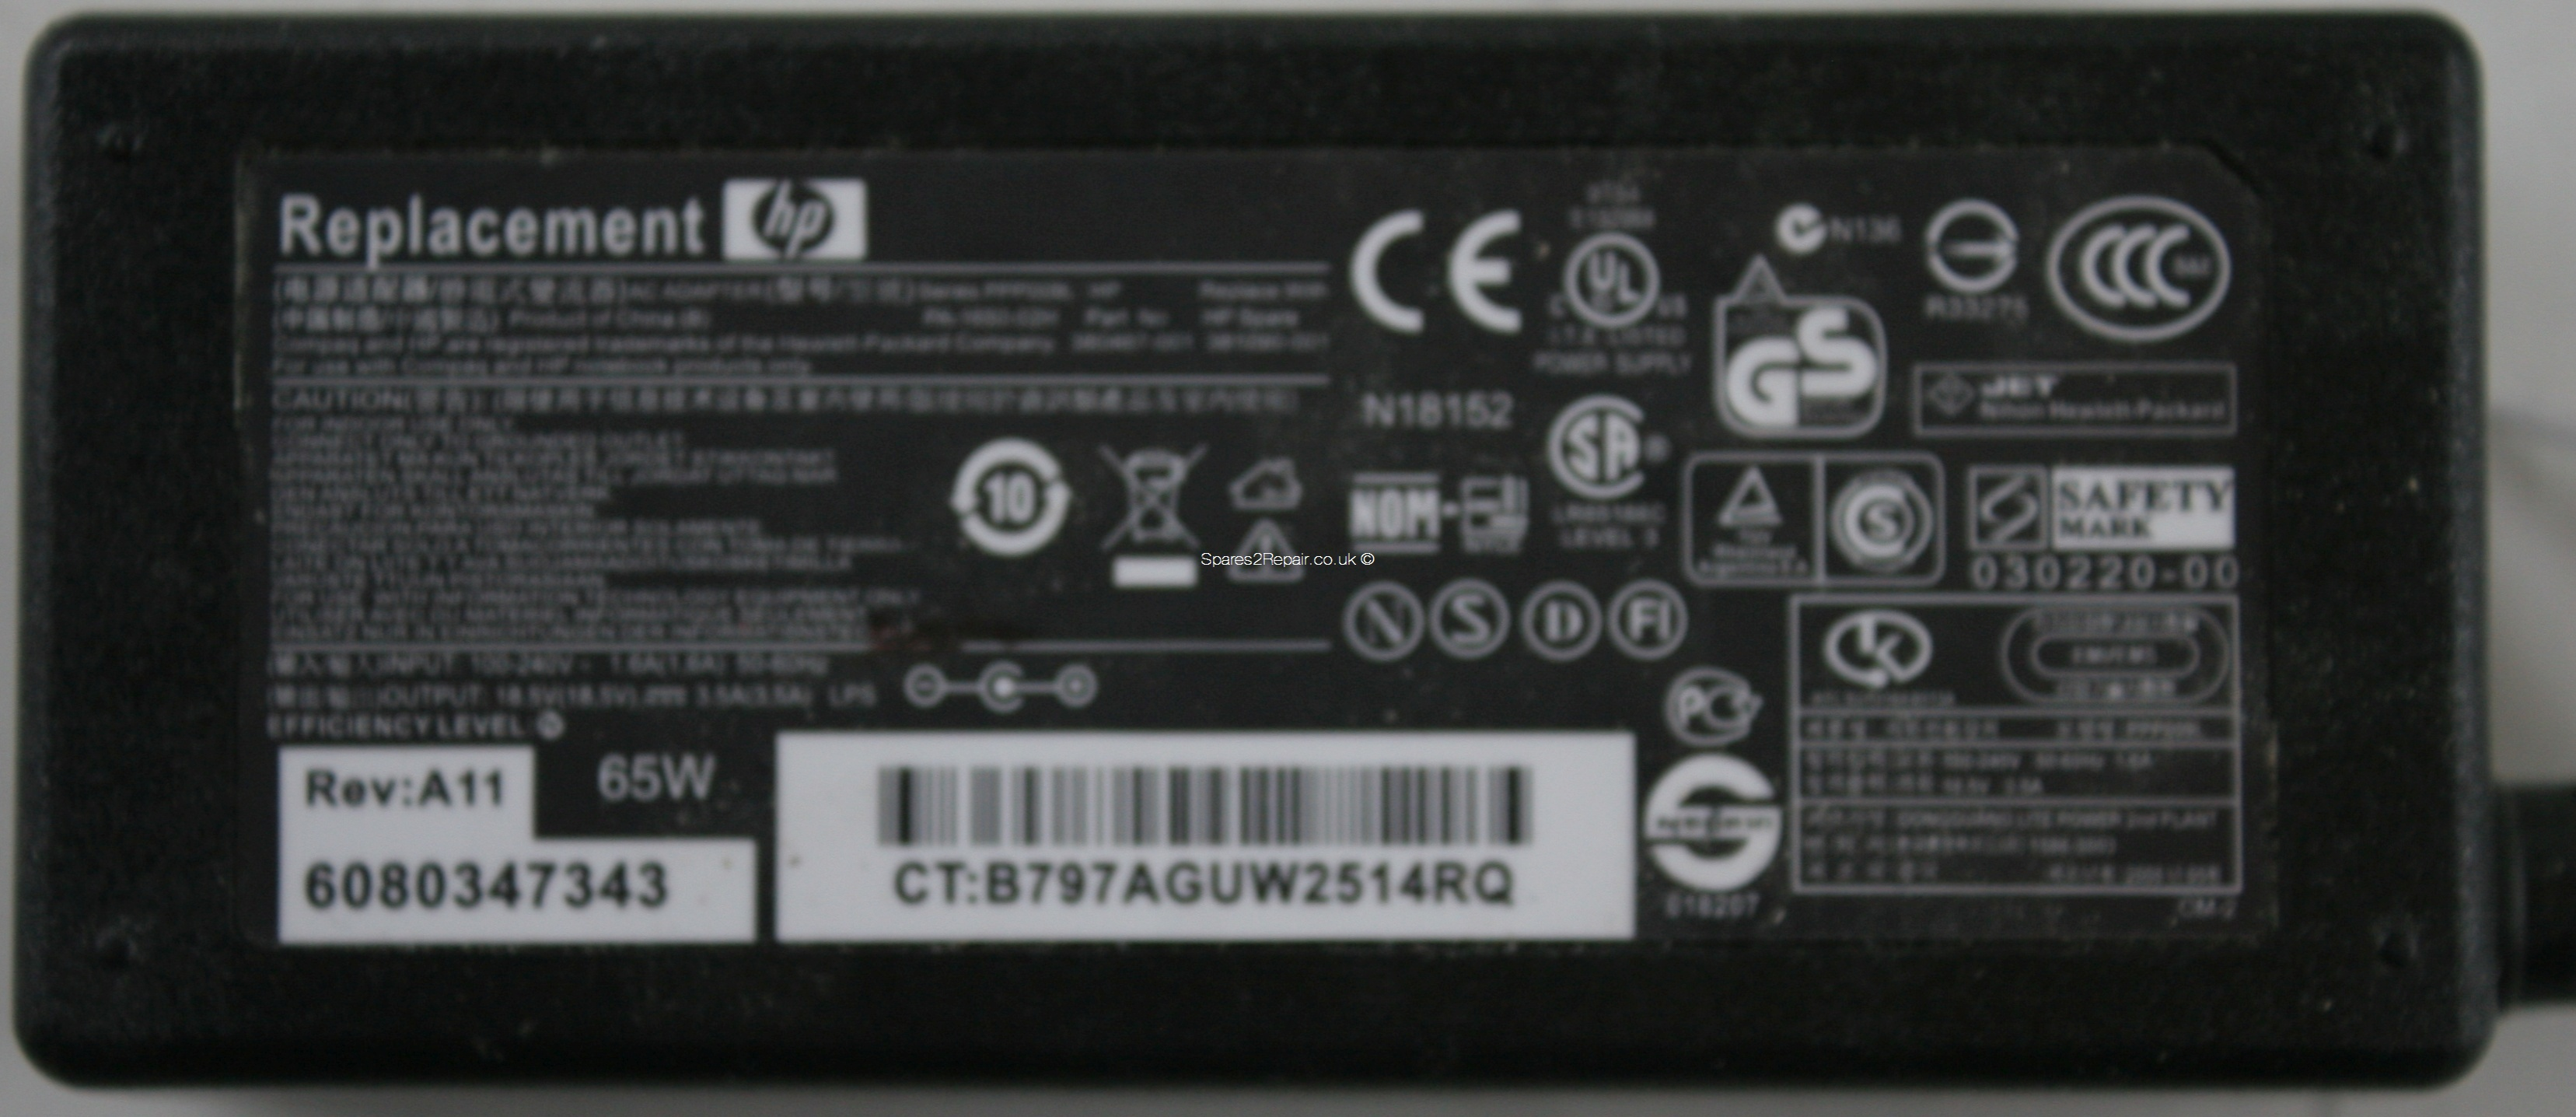 Hewlett Packard - Charger - PPP009L - PA-1650-02H - 380467-001 - Rev:A11 - 18.5V 3.5A